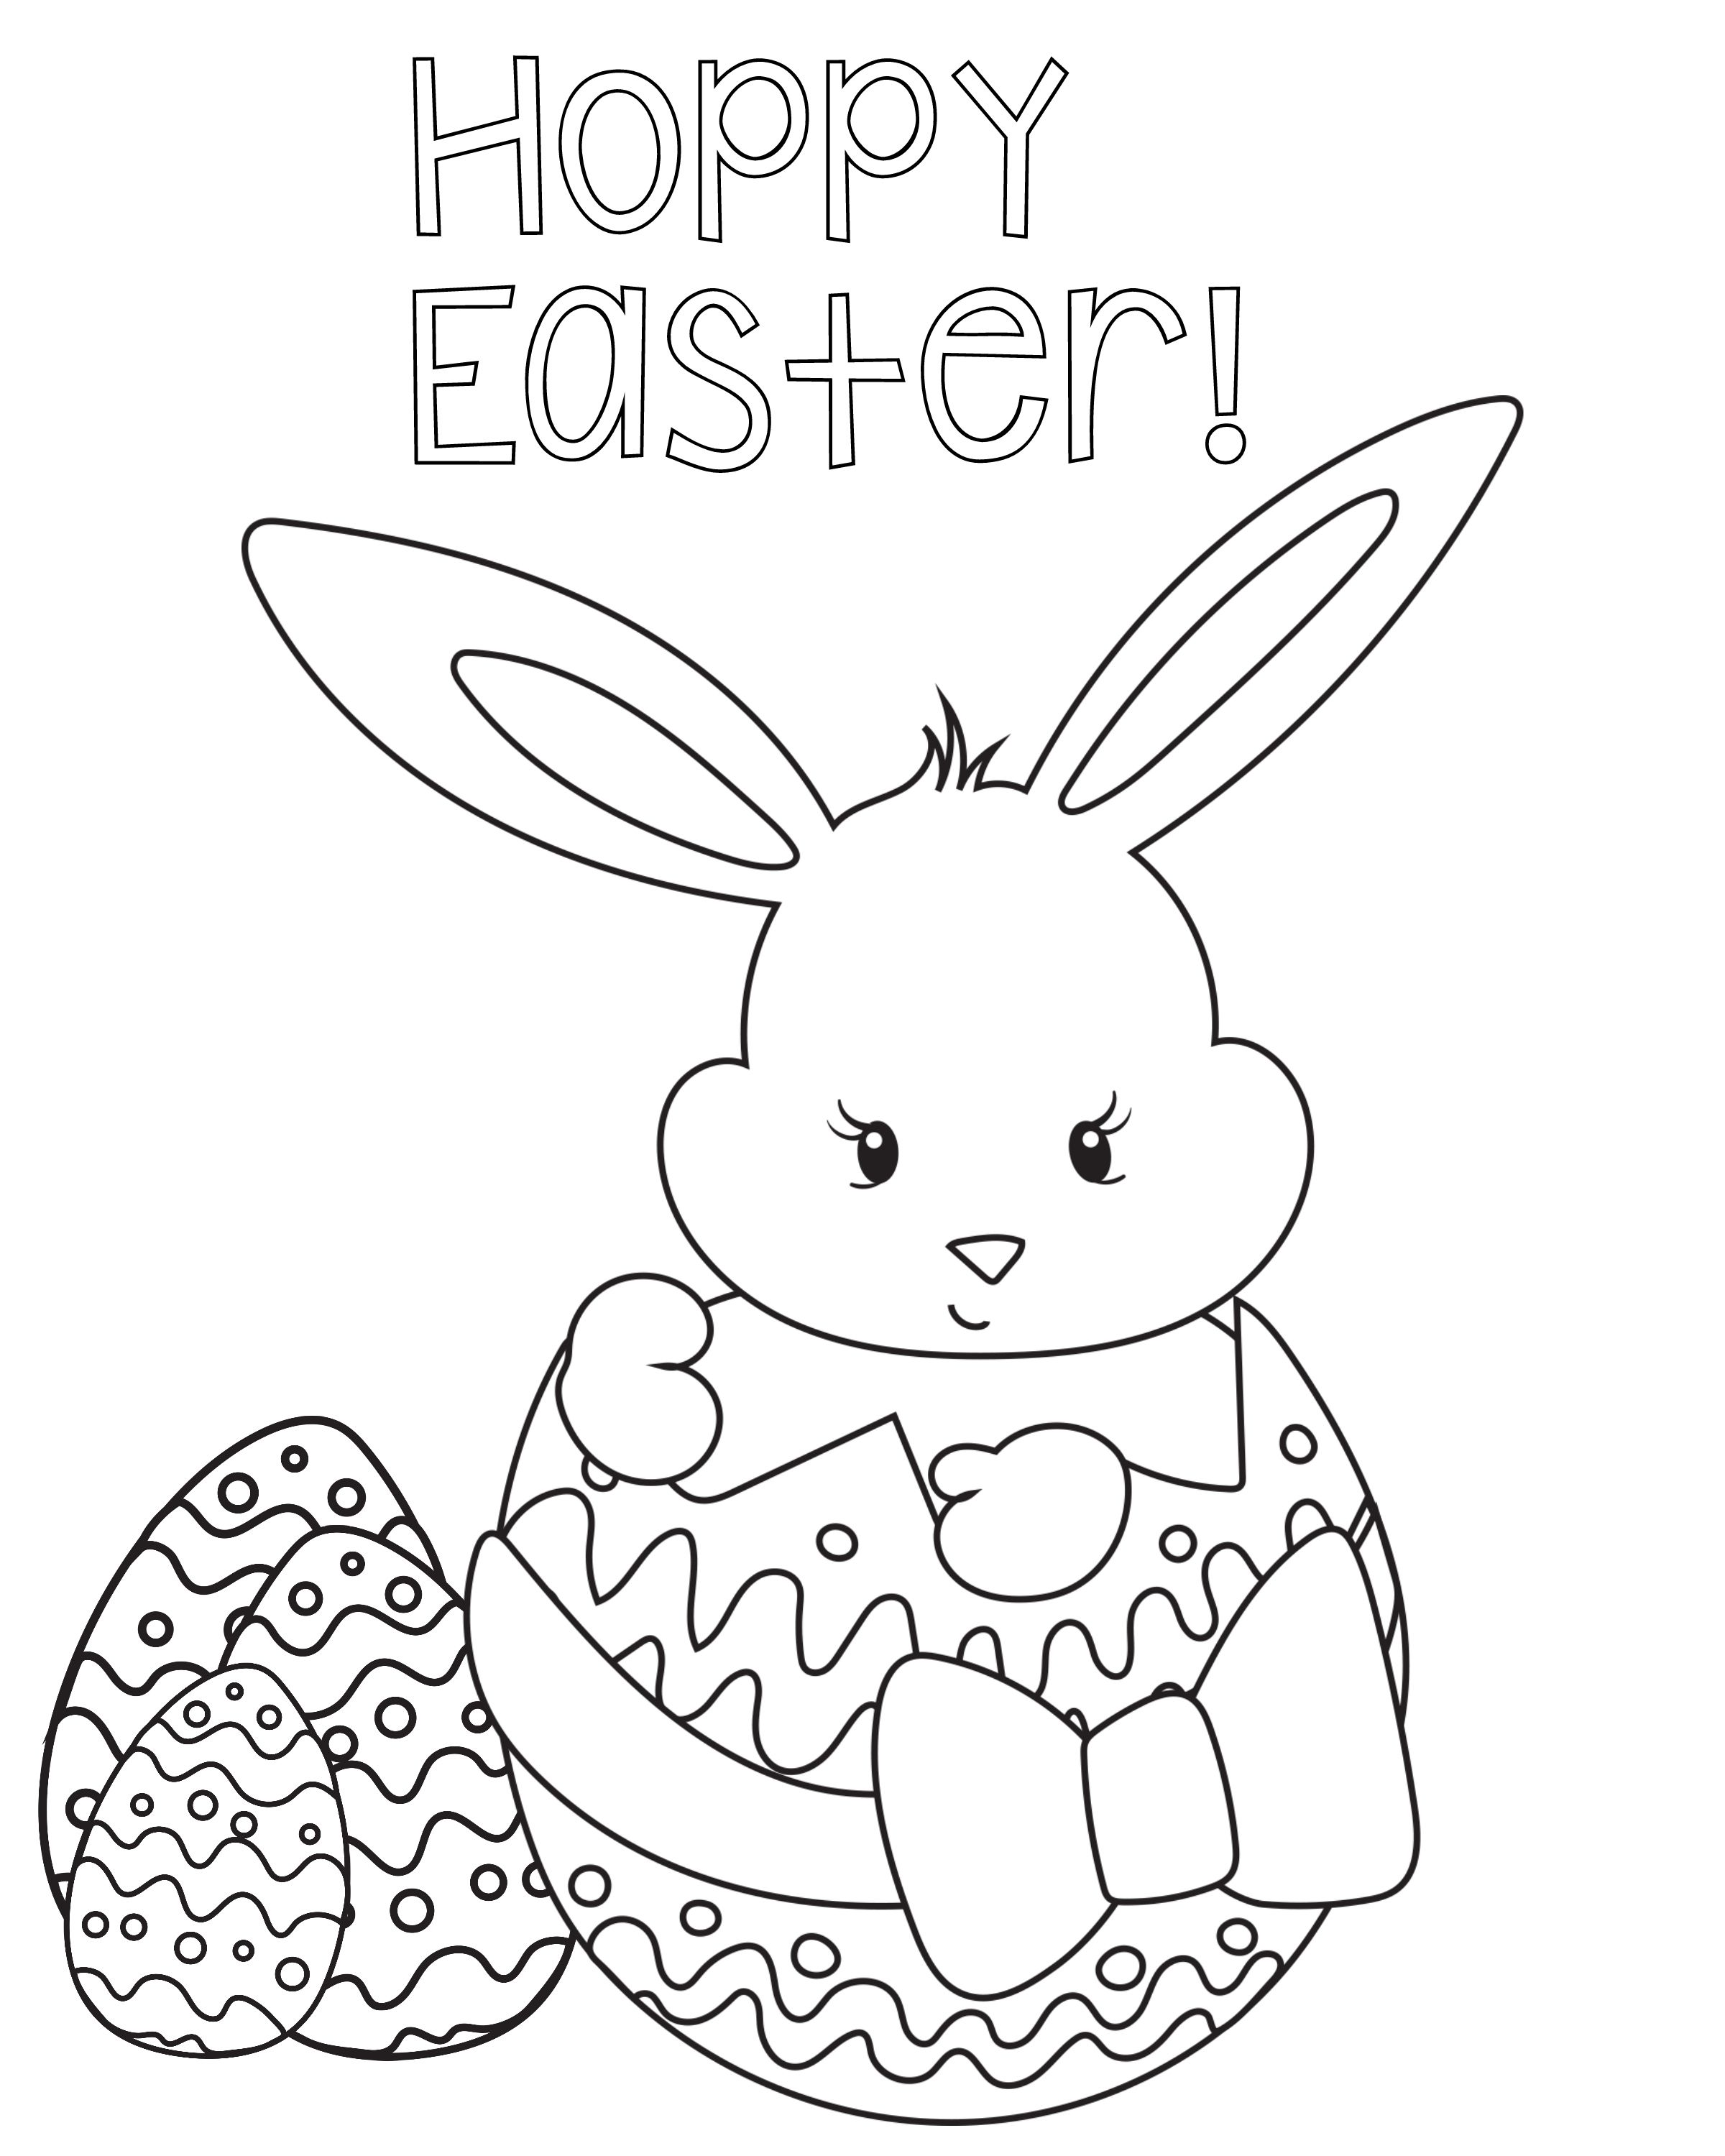 Pin by jitendra Singh on Happy Easter Coloring Pages | Pinterest ...